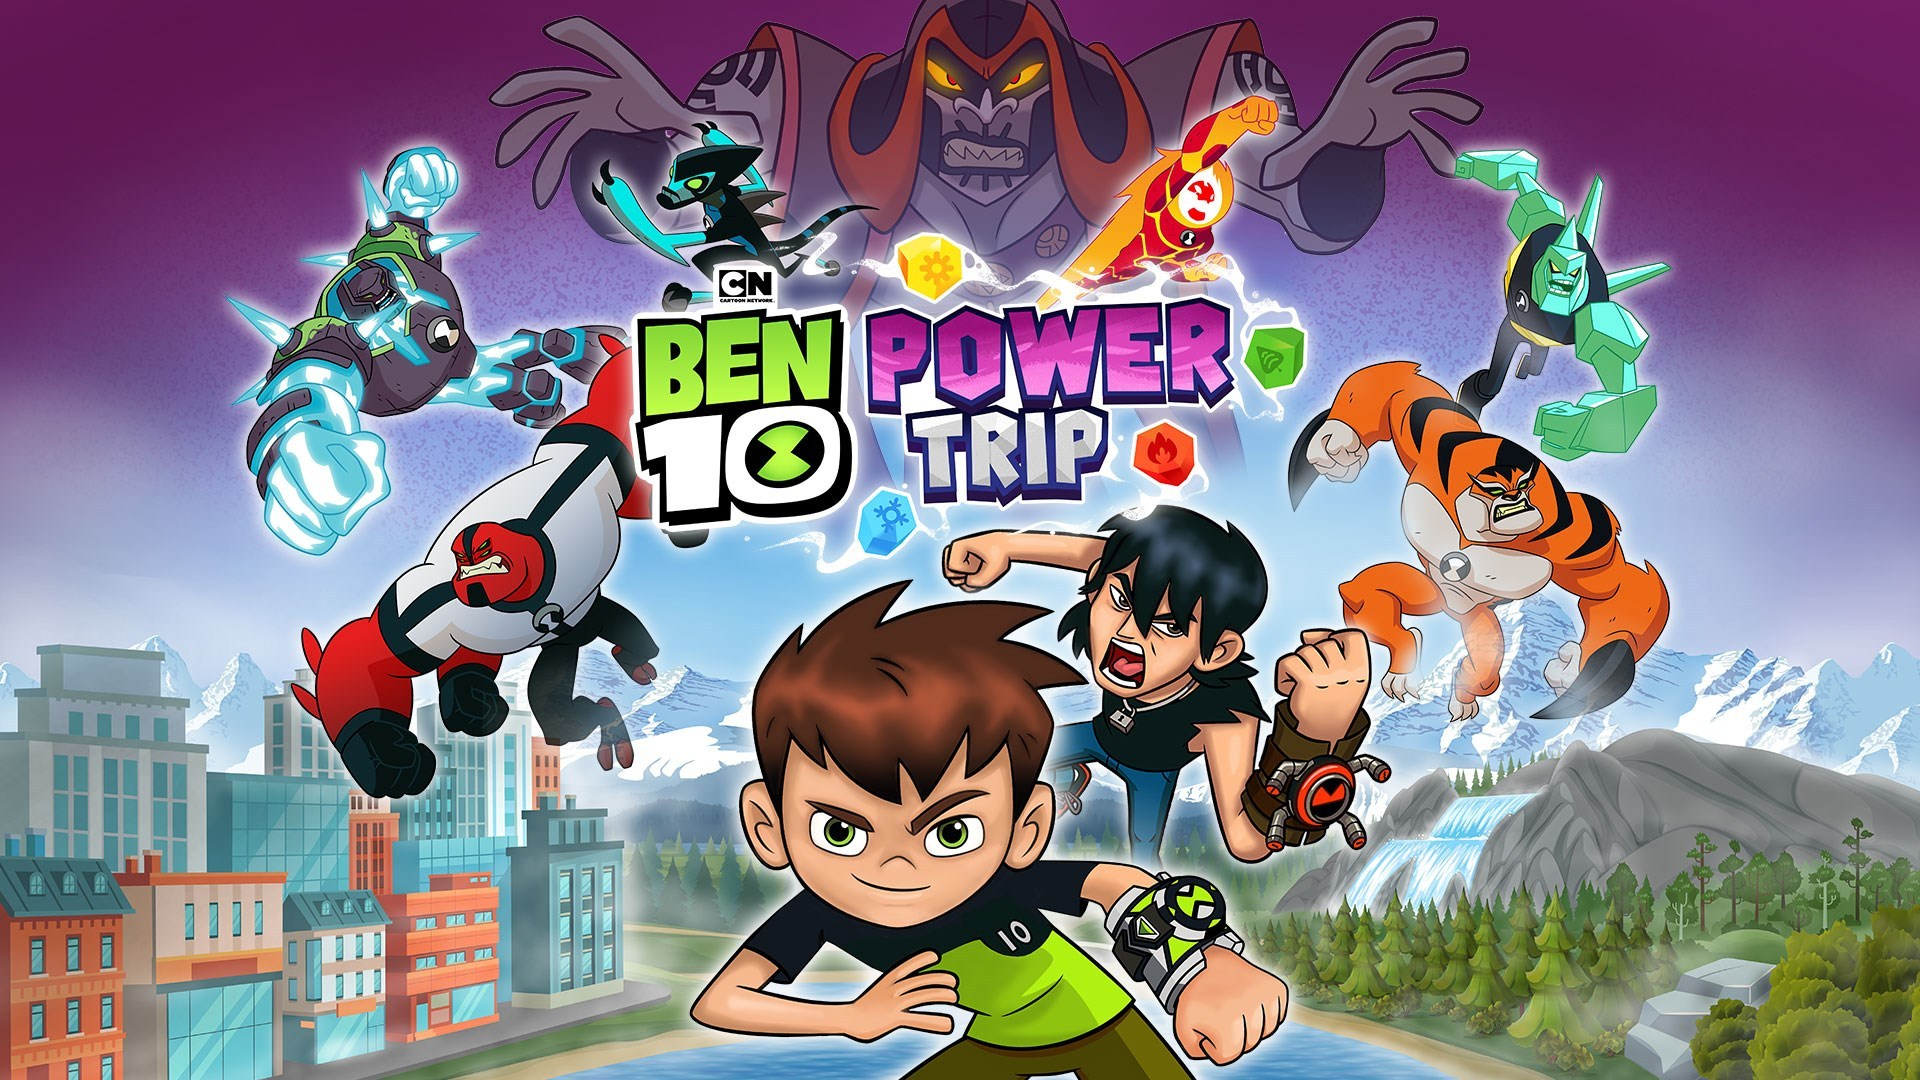 Ben 10 Bundle Is Now Available For Xbox One And Xbox Series X|S 1